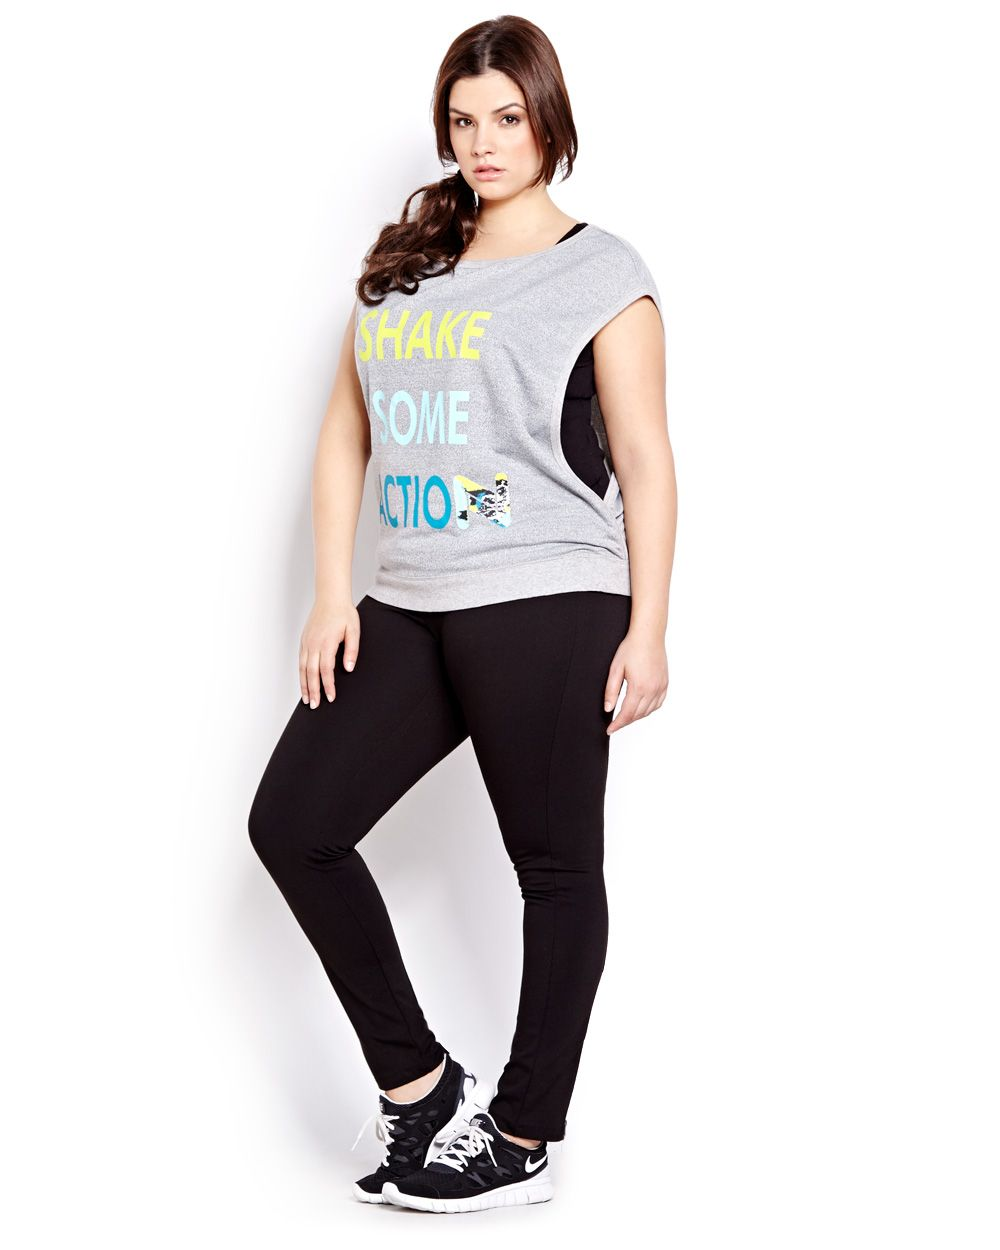 NOLA Spring Collection Casual sporty outfits, Sporty